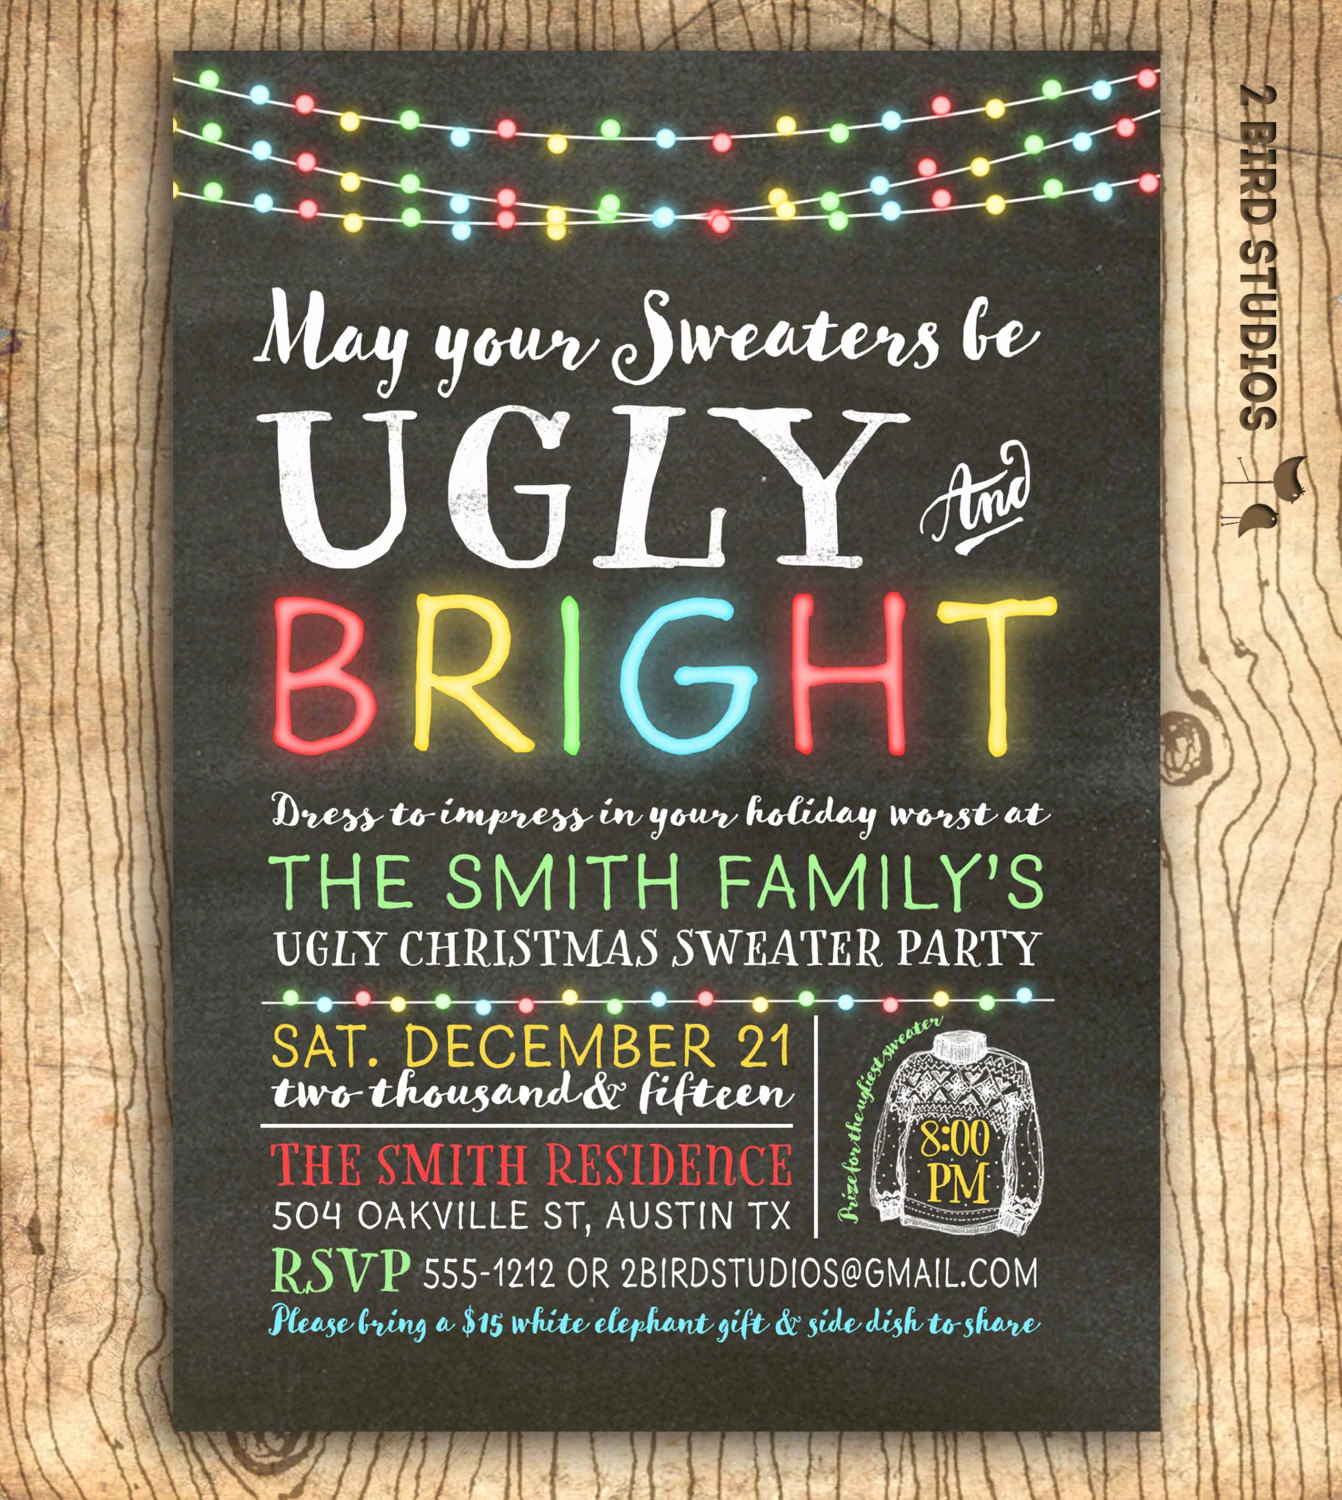 Ugly Sweater Party Invitation Free Unique Ugly Christmas Sweater Invitation Ugly Sweater Party